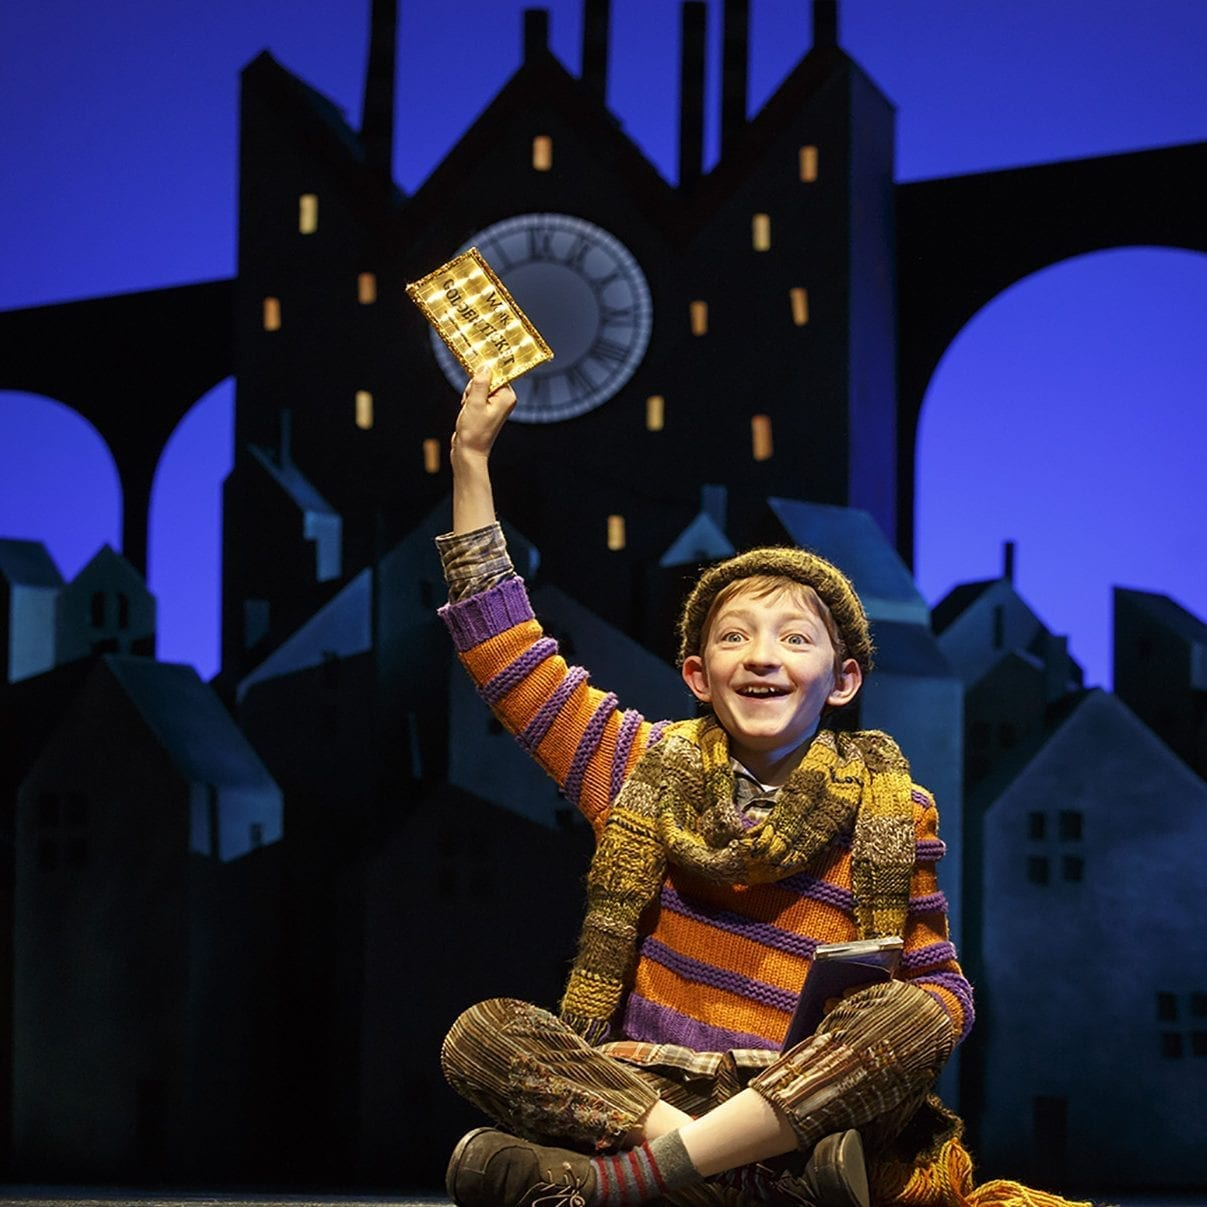 Charlie and the Chocolate Factory - The Front Row Center